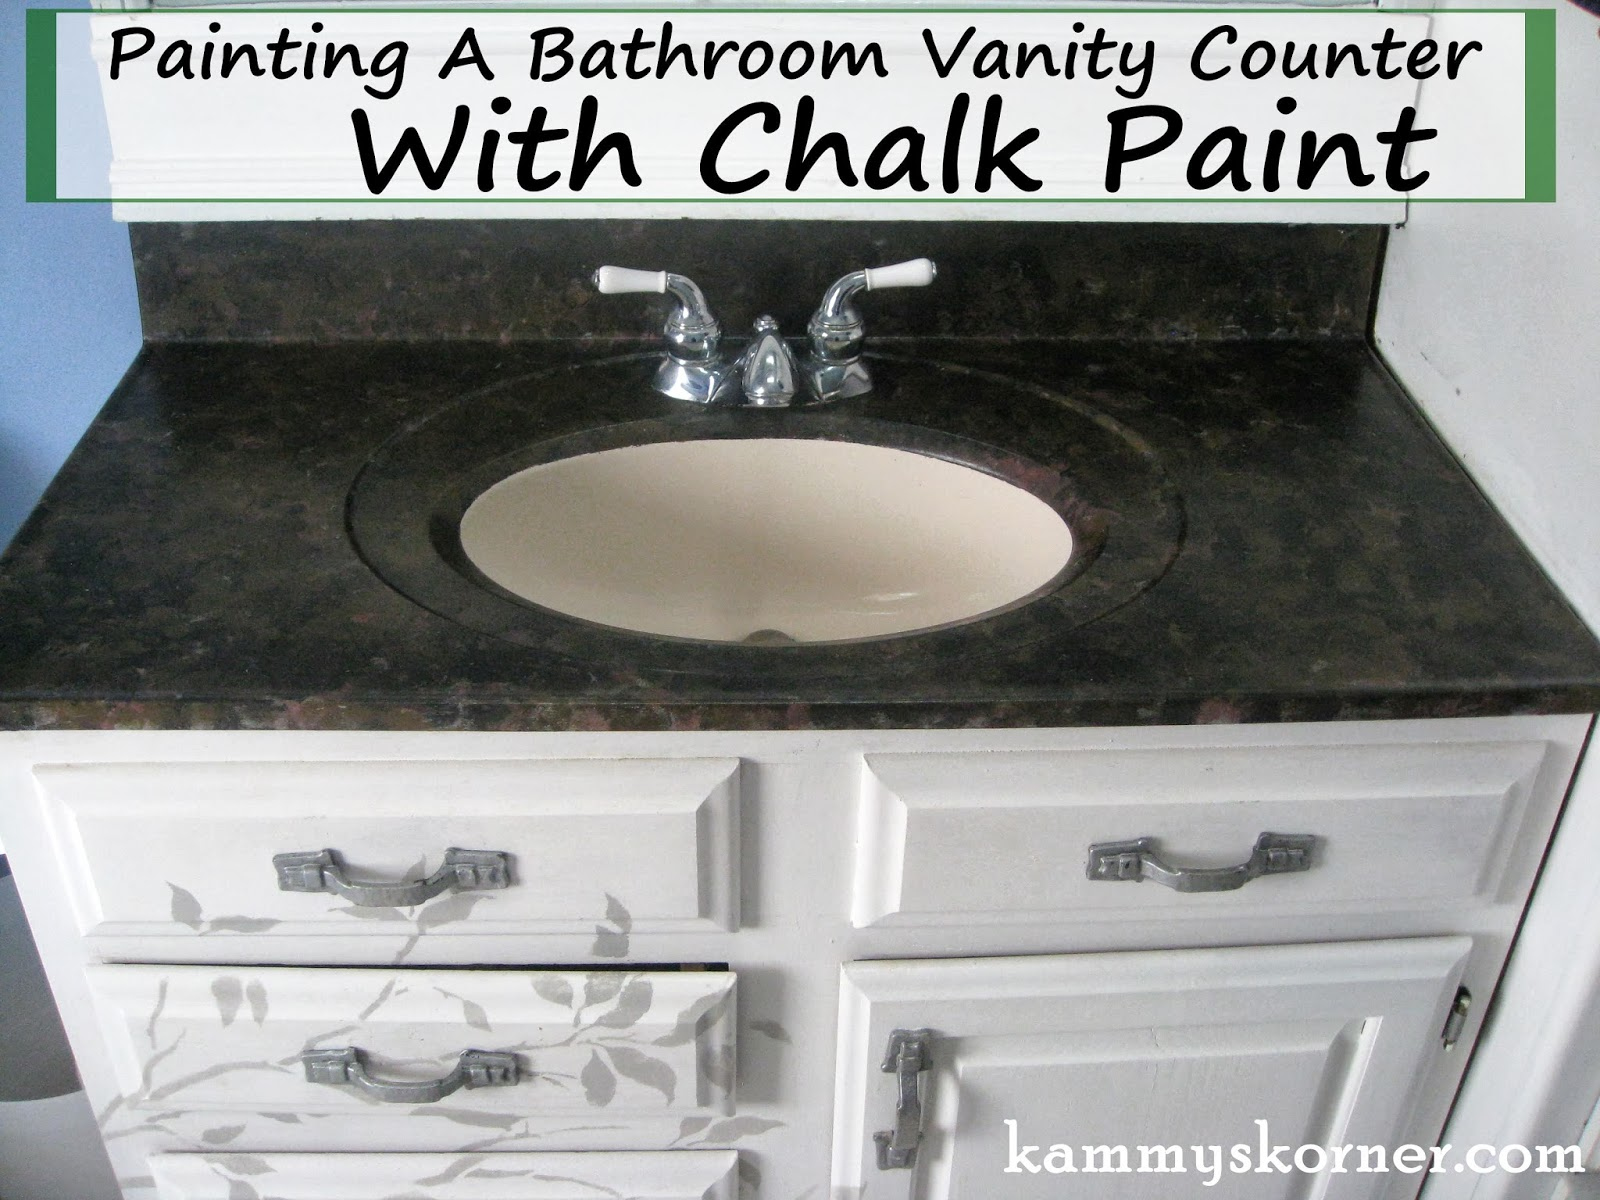 Painting Over Laminate Bathroom Cabinets kammy's korner: painting a porcelain vanity countertop {new and